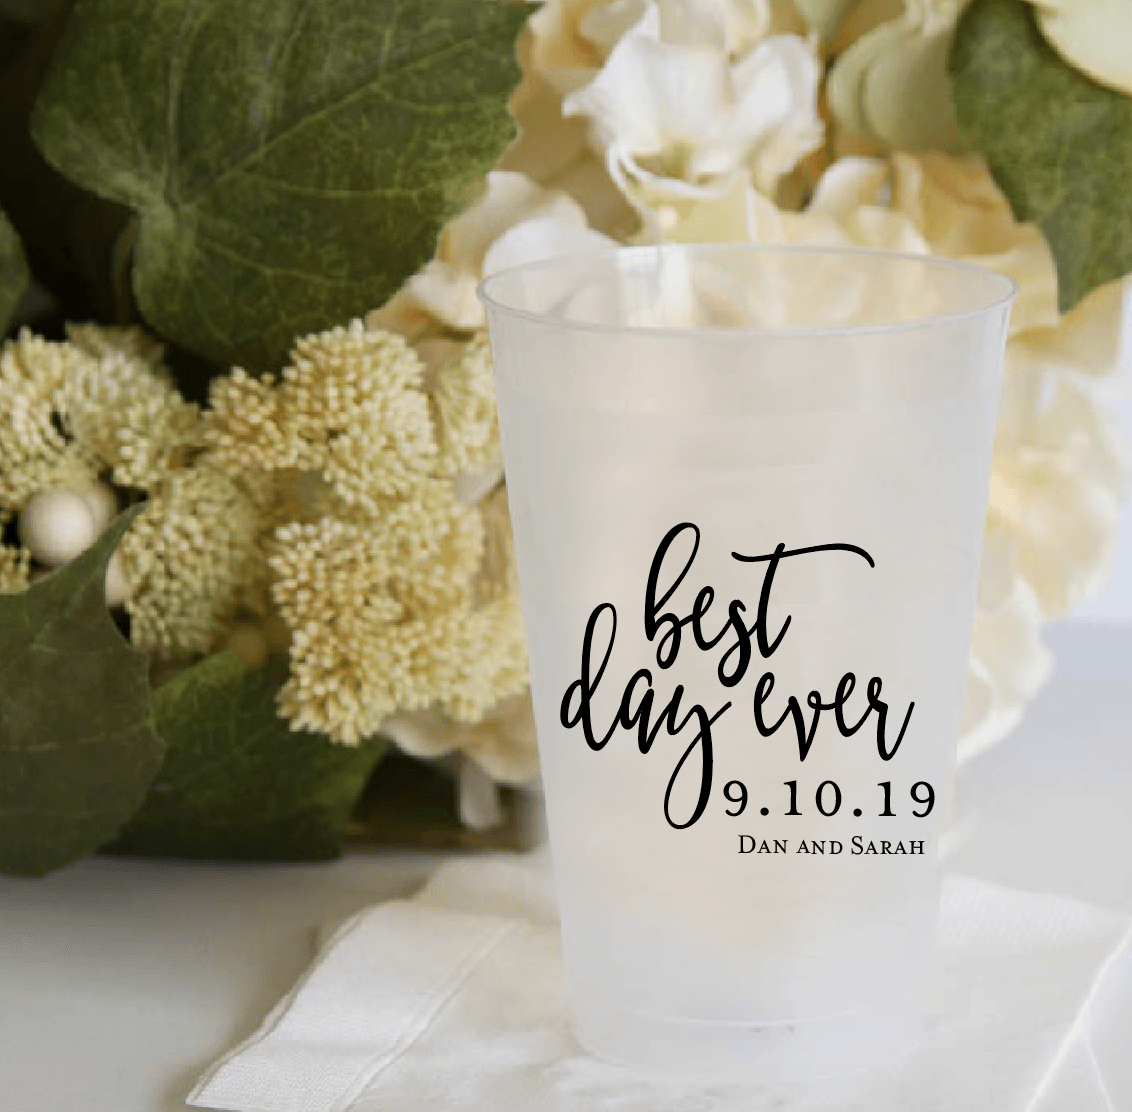 Personalized Wedding Cup - Best Day Ever Personalized Wedding Frosted Plastic Cups